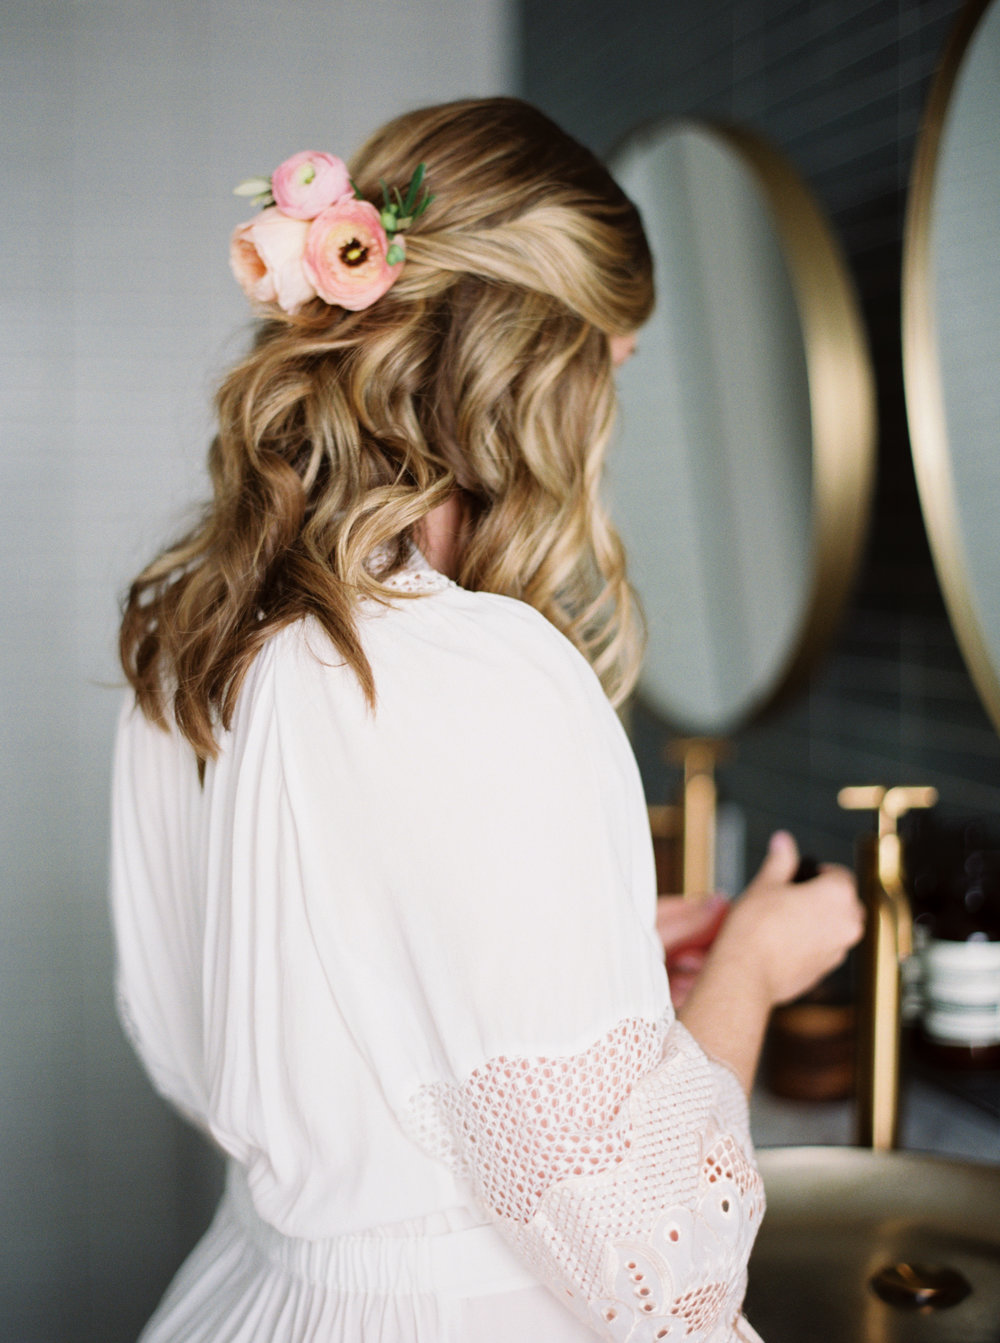 7-Half-Pulled-Back-Wedding-Hairstyles-bridal-hairstyle-jenna-mcelroy-1